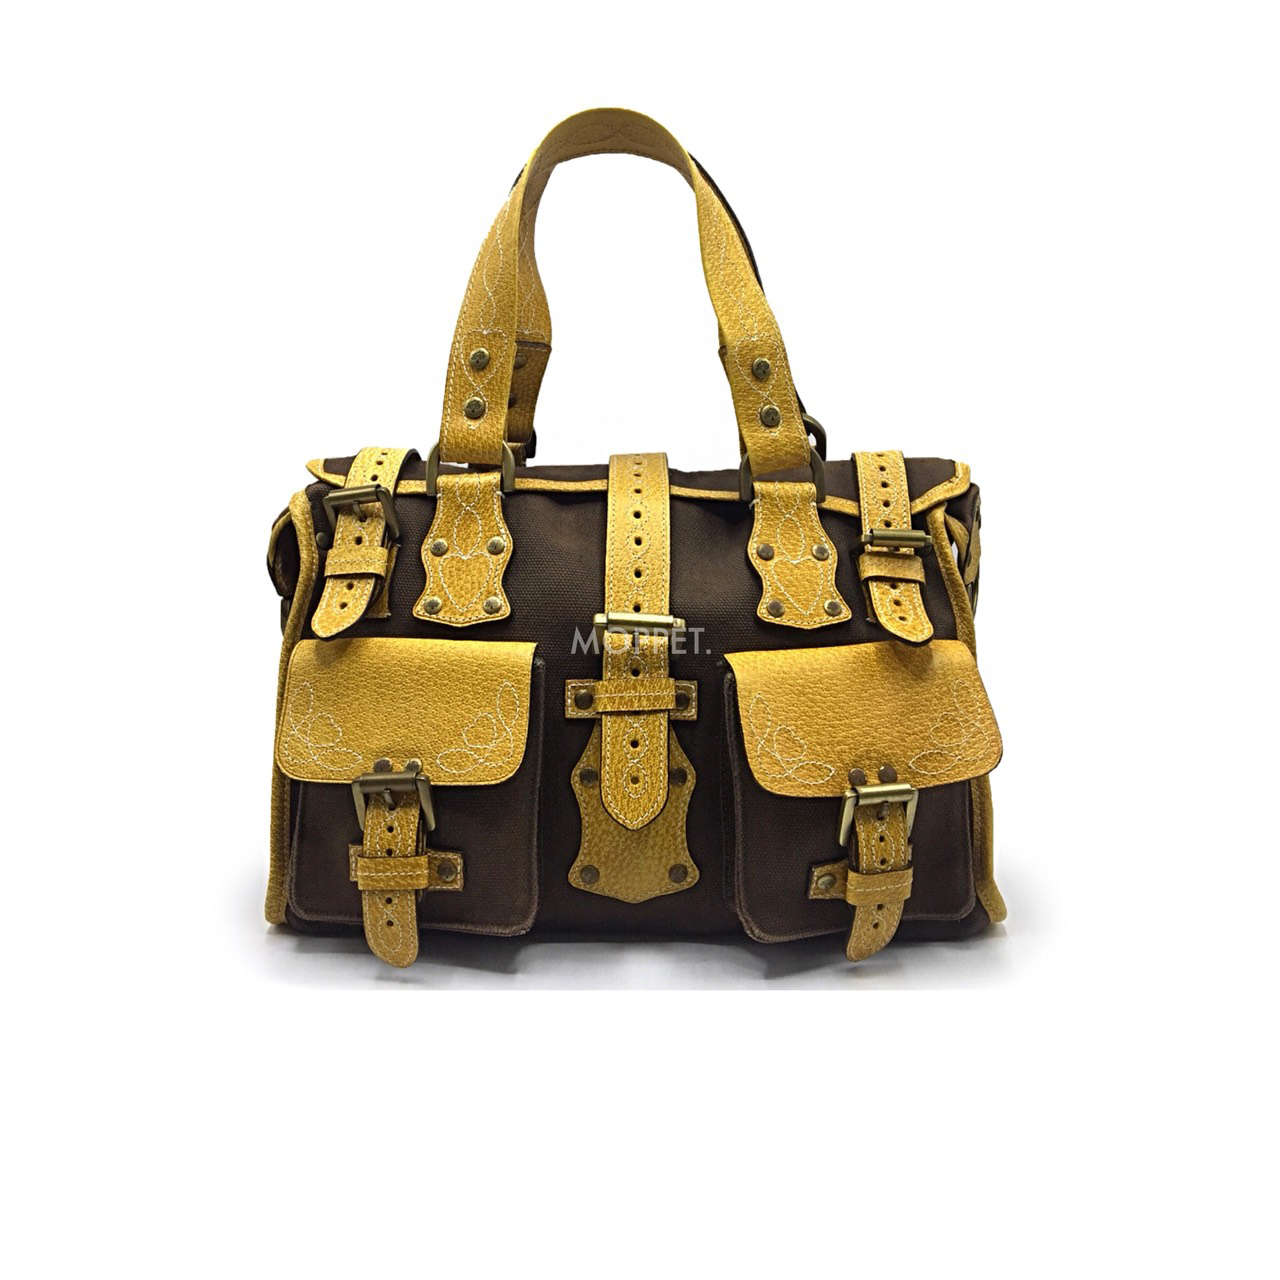 Used Mulberry Roxanne Handbag in Khaki/Yellow Leather GHW